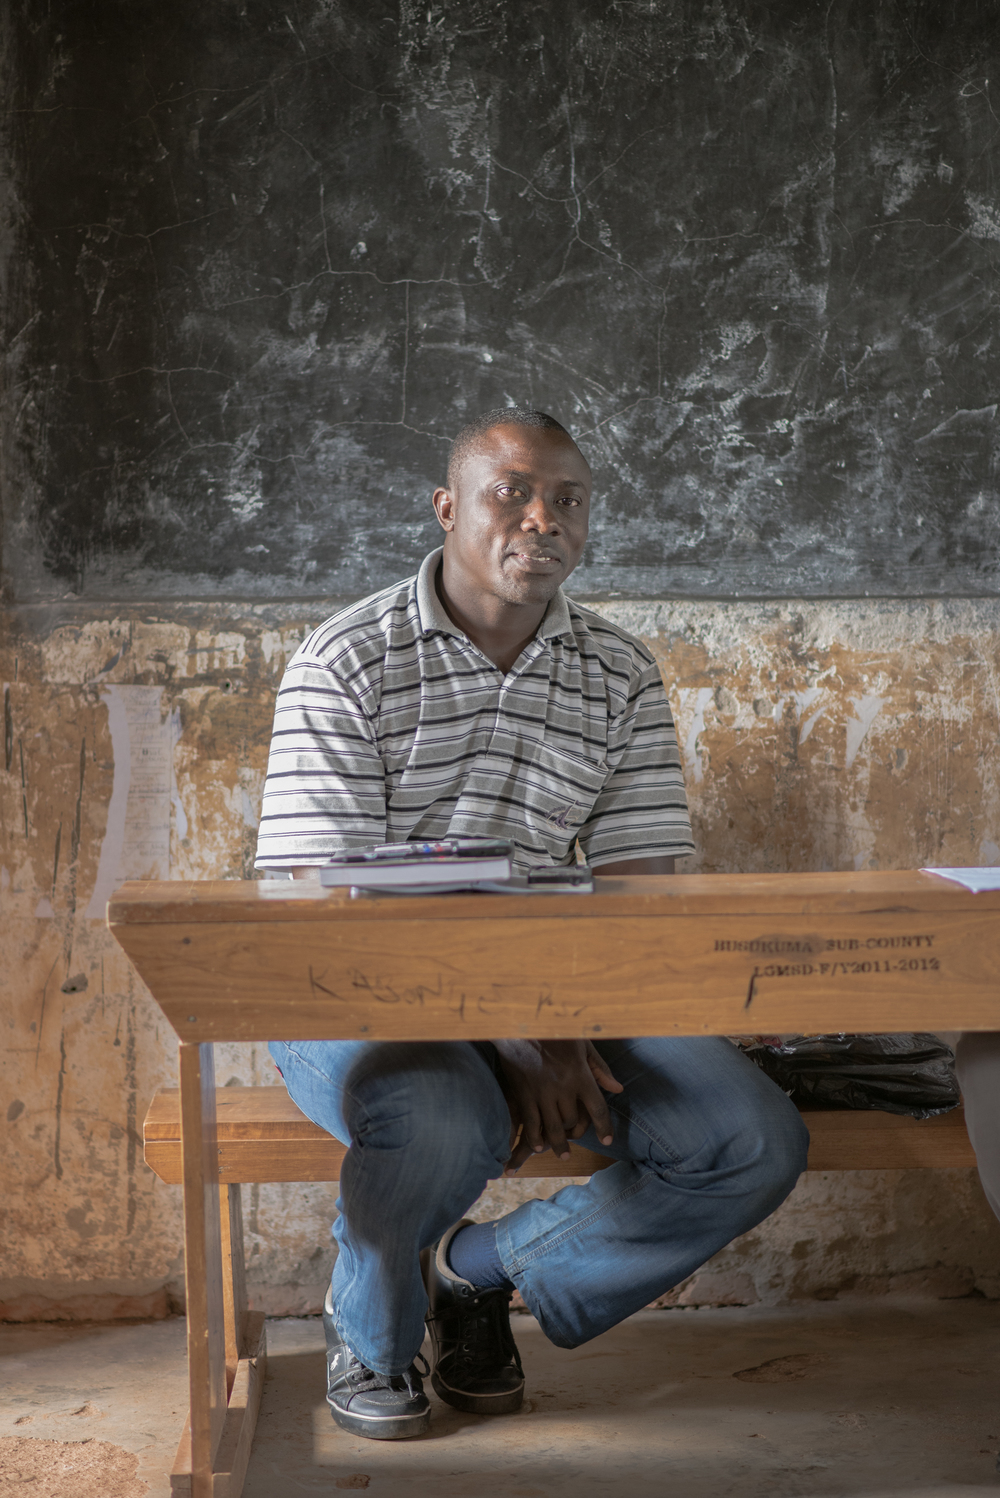 Lawrence Ssemakula, G.O.D. East Africa Cooperative and Lead Teacher at St. John's Primary